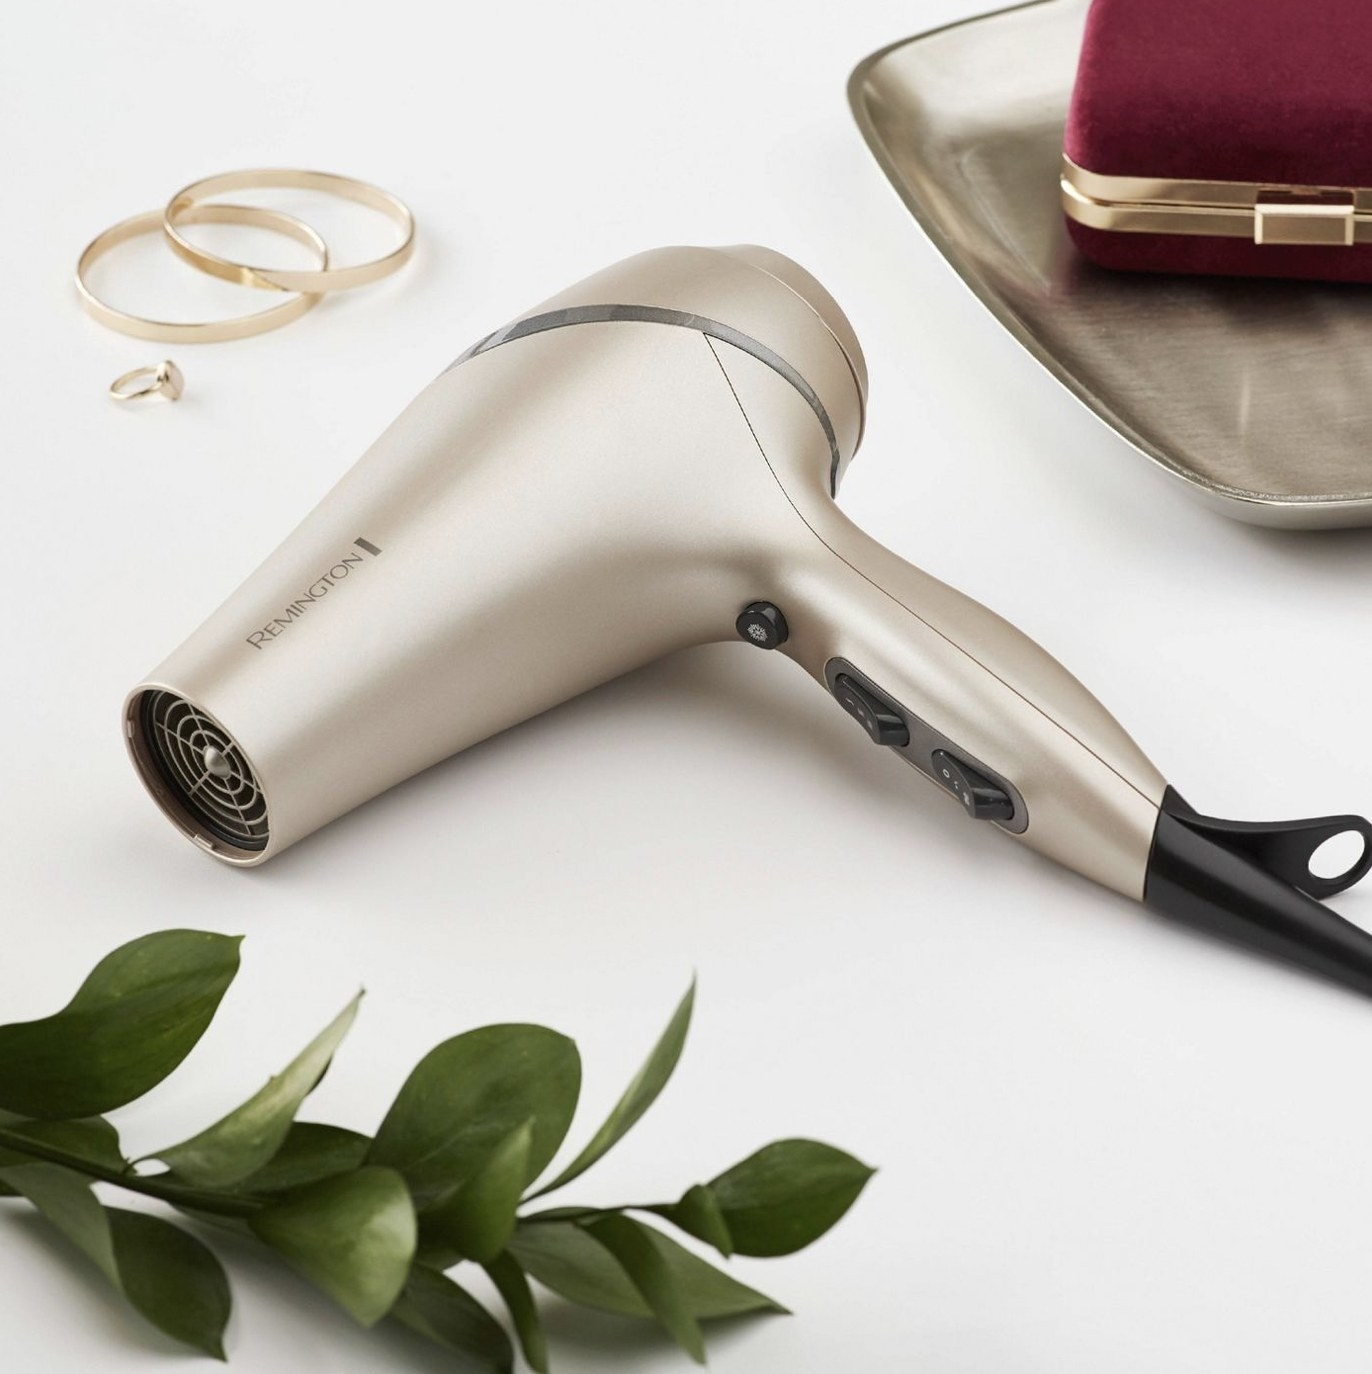 A grey blow dryer with jewelry in the background